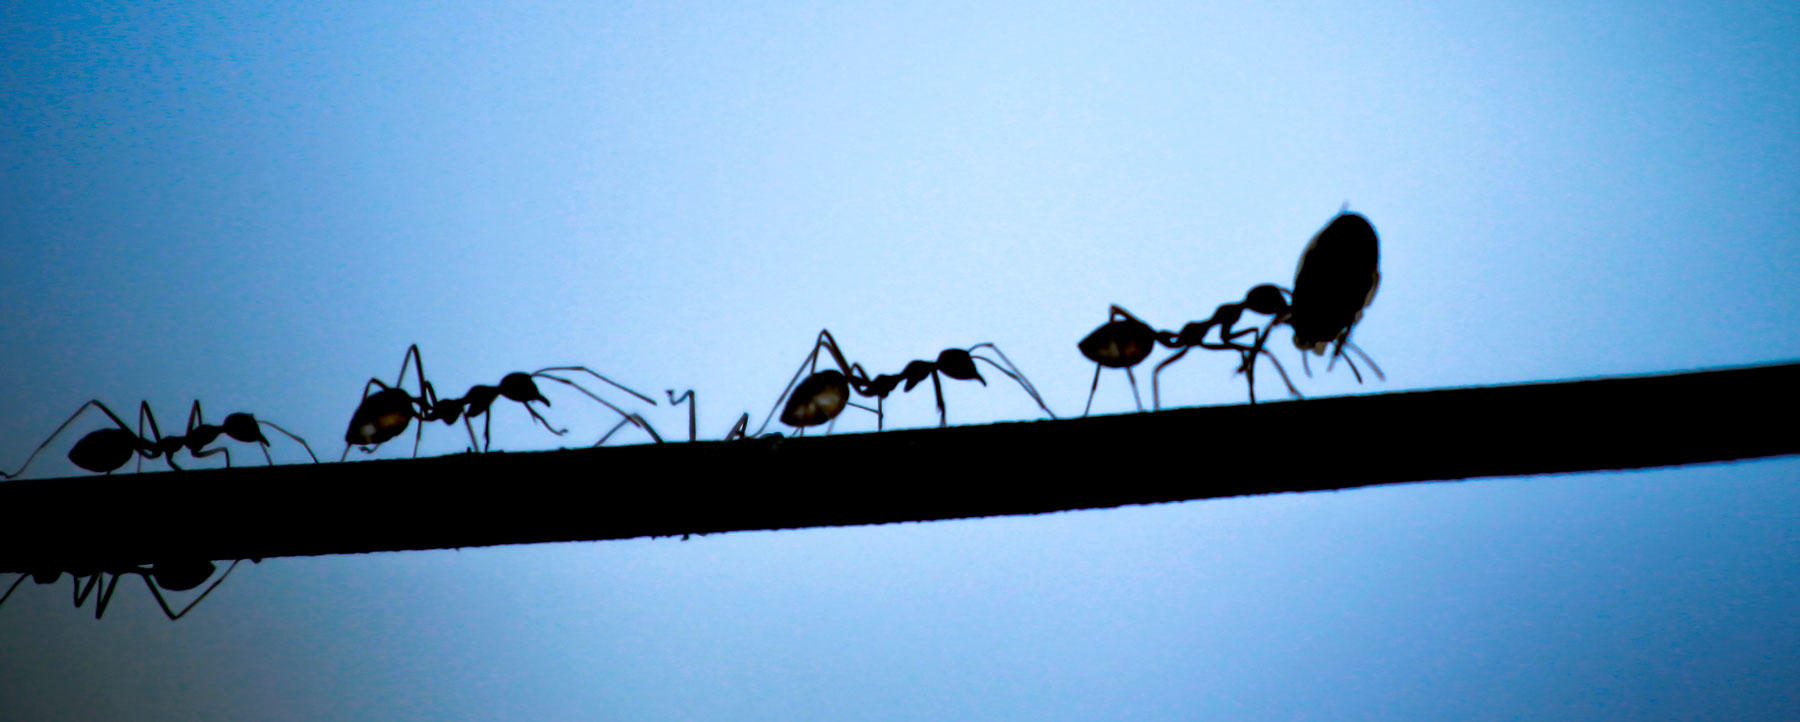 Silhouetted black ants